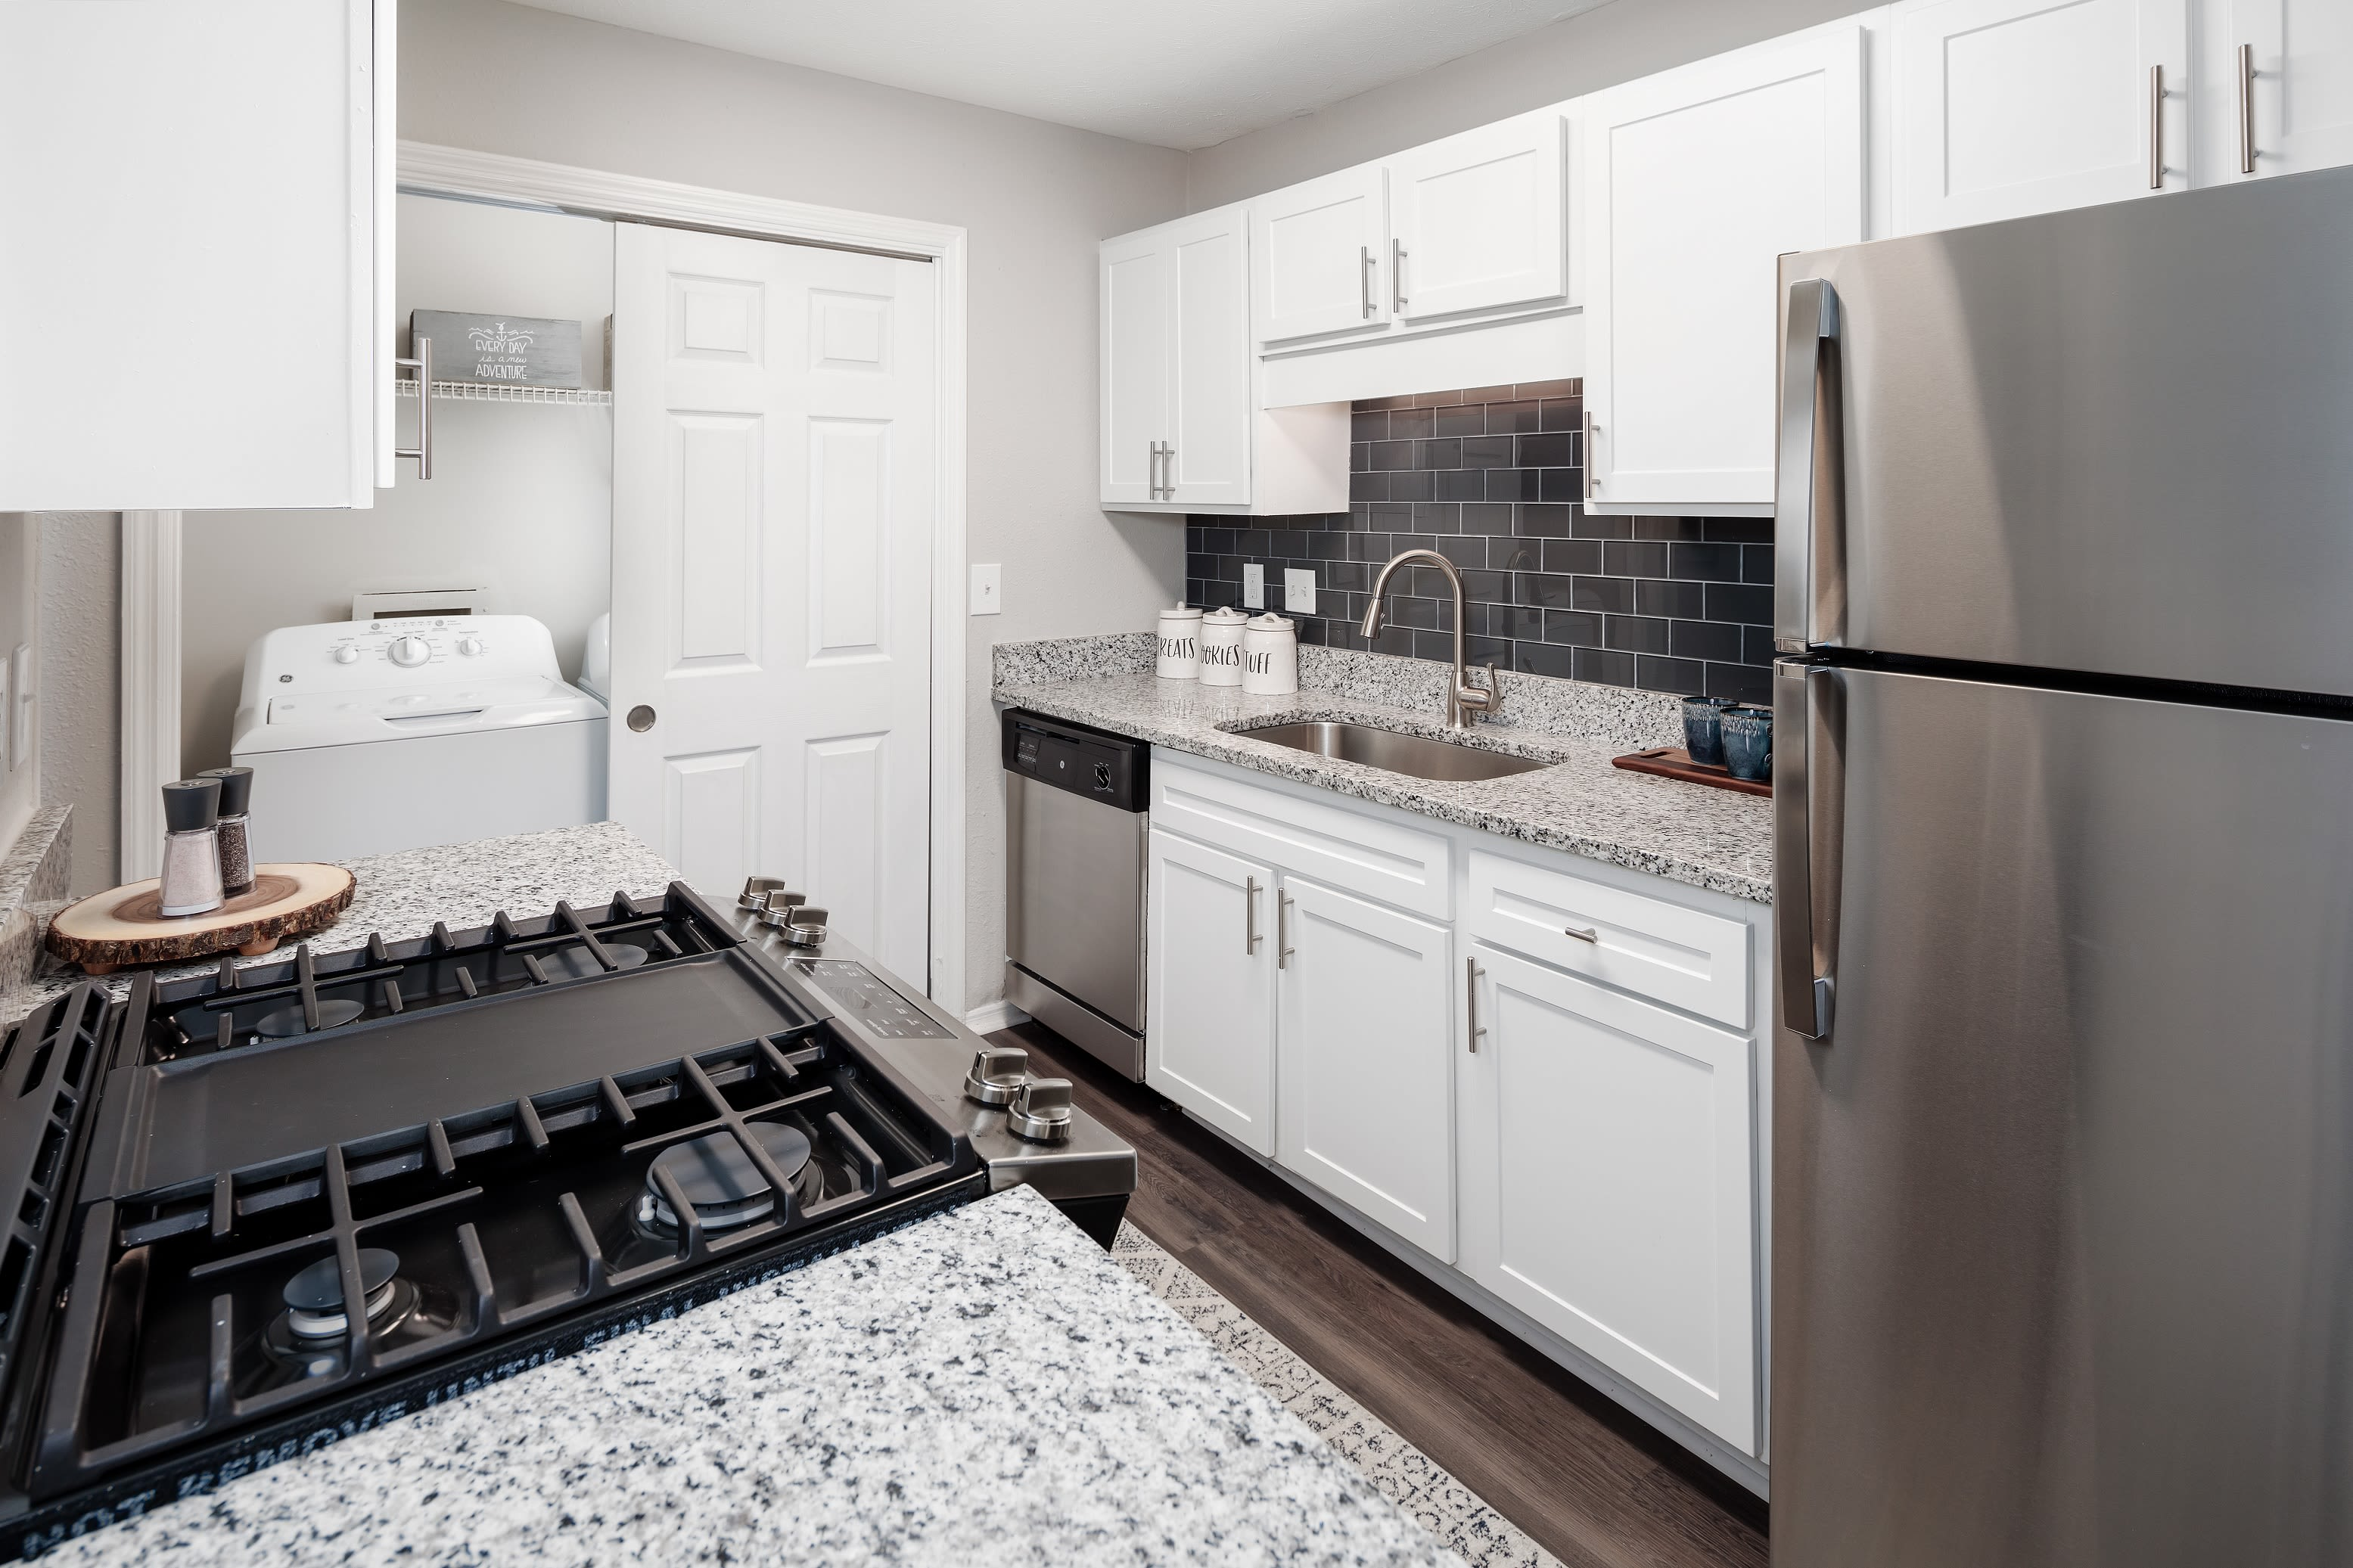 Granite countertops, stainless-steel appliances, and a subway tile backsplash in model home's kitchen at The Bentley at Marietta in Marietta, Georgia